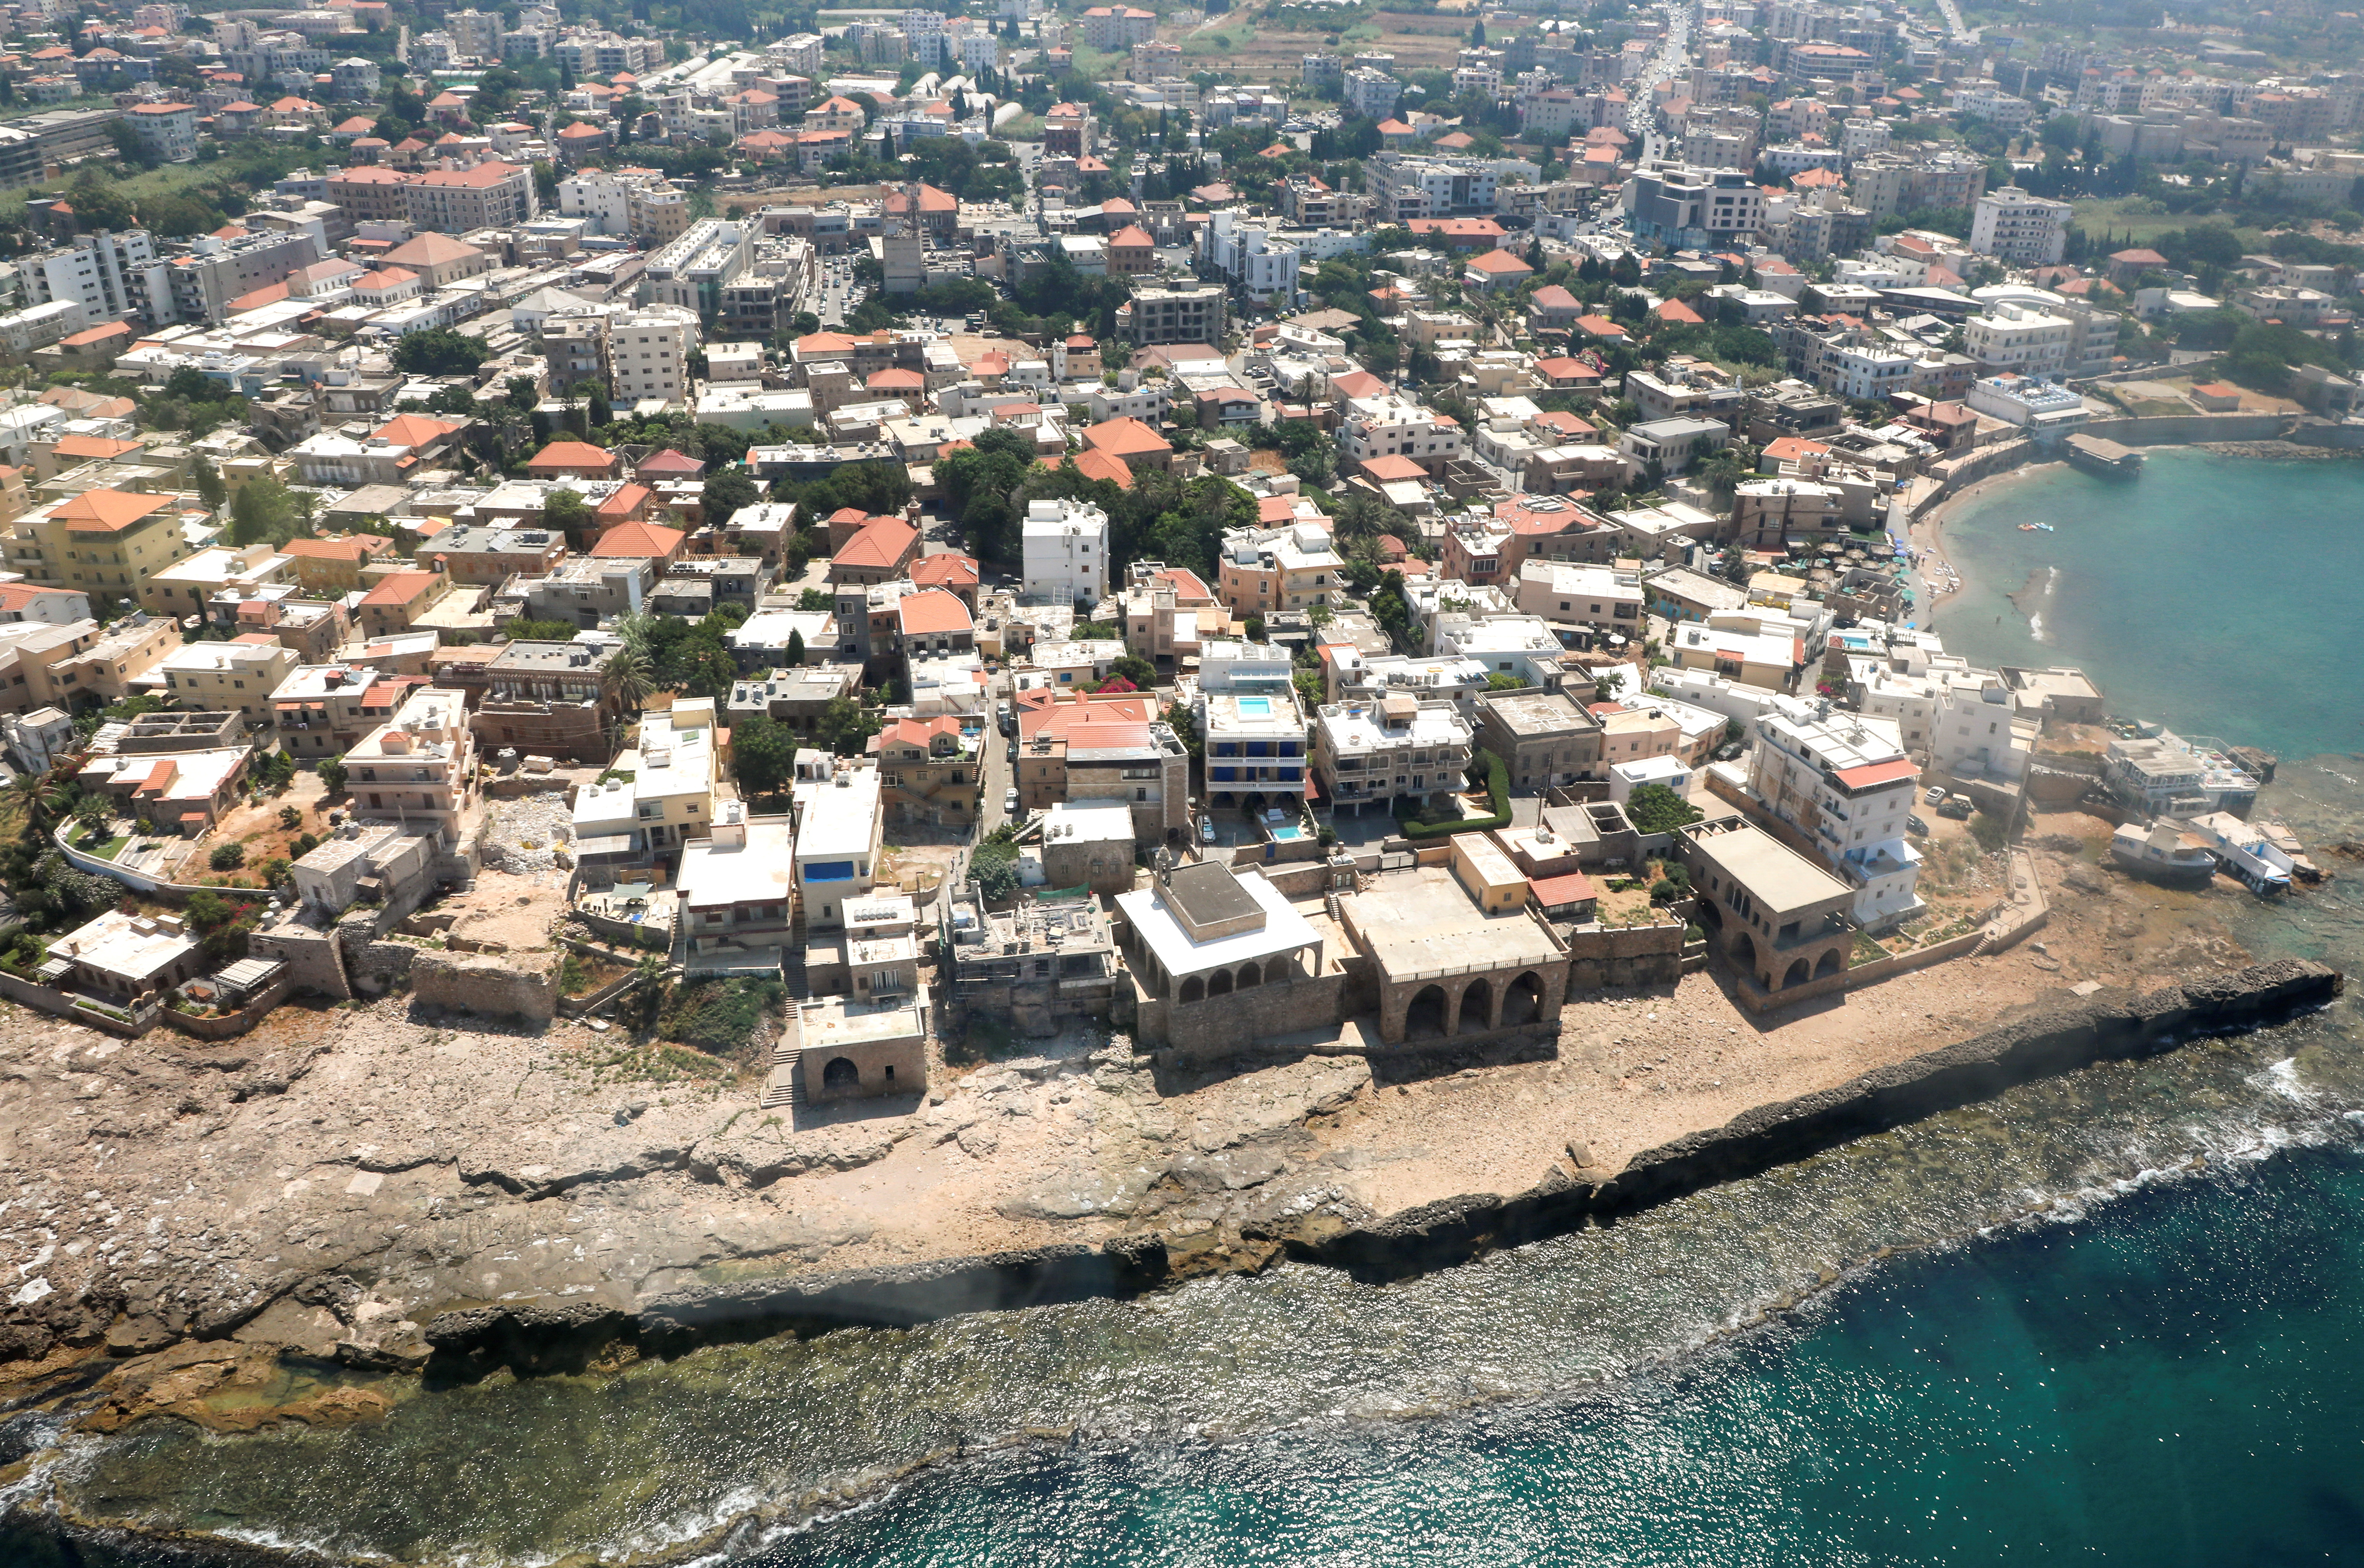 An aerial view shows the coastal city of Batroun during a tour by the Lebanese air force in Batroun, Lebanon July 8, 2021. REUTERS/Mohamed Azakir